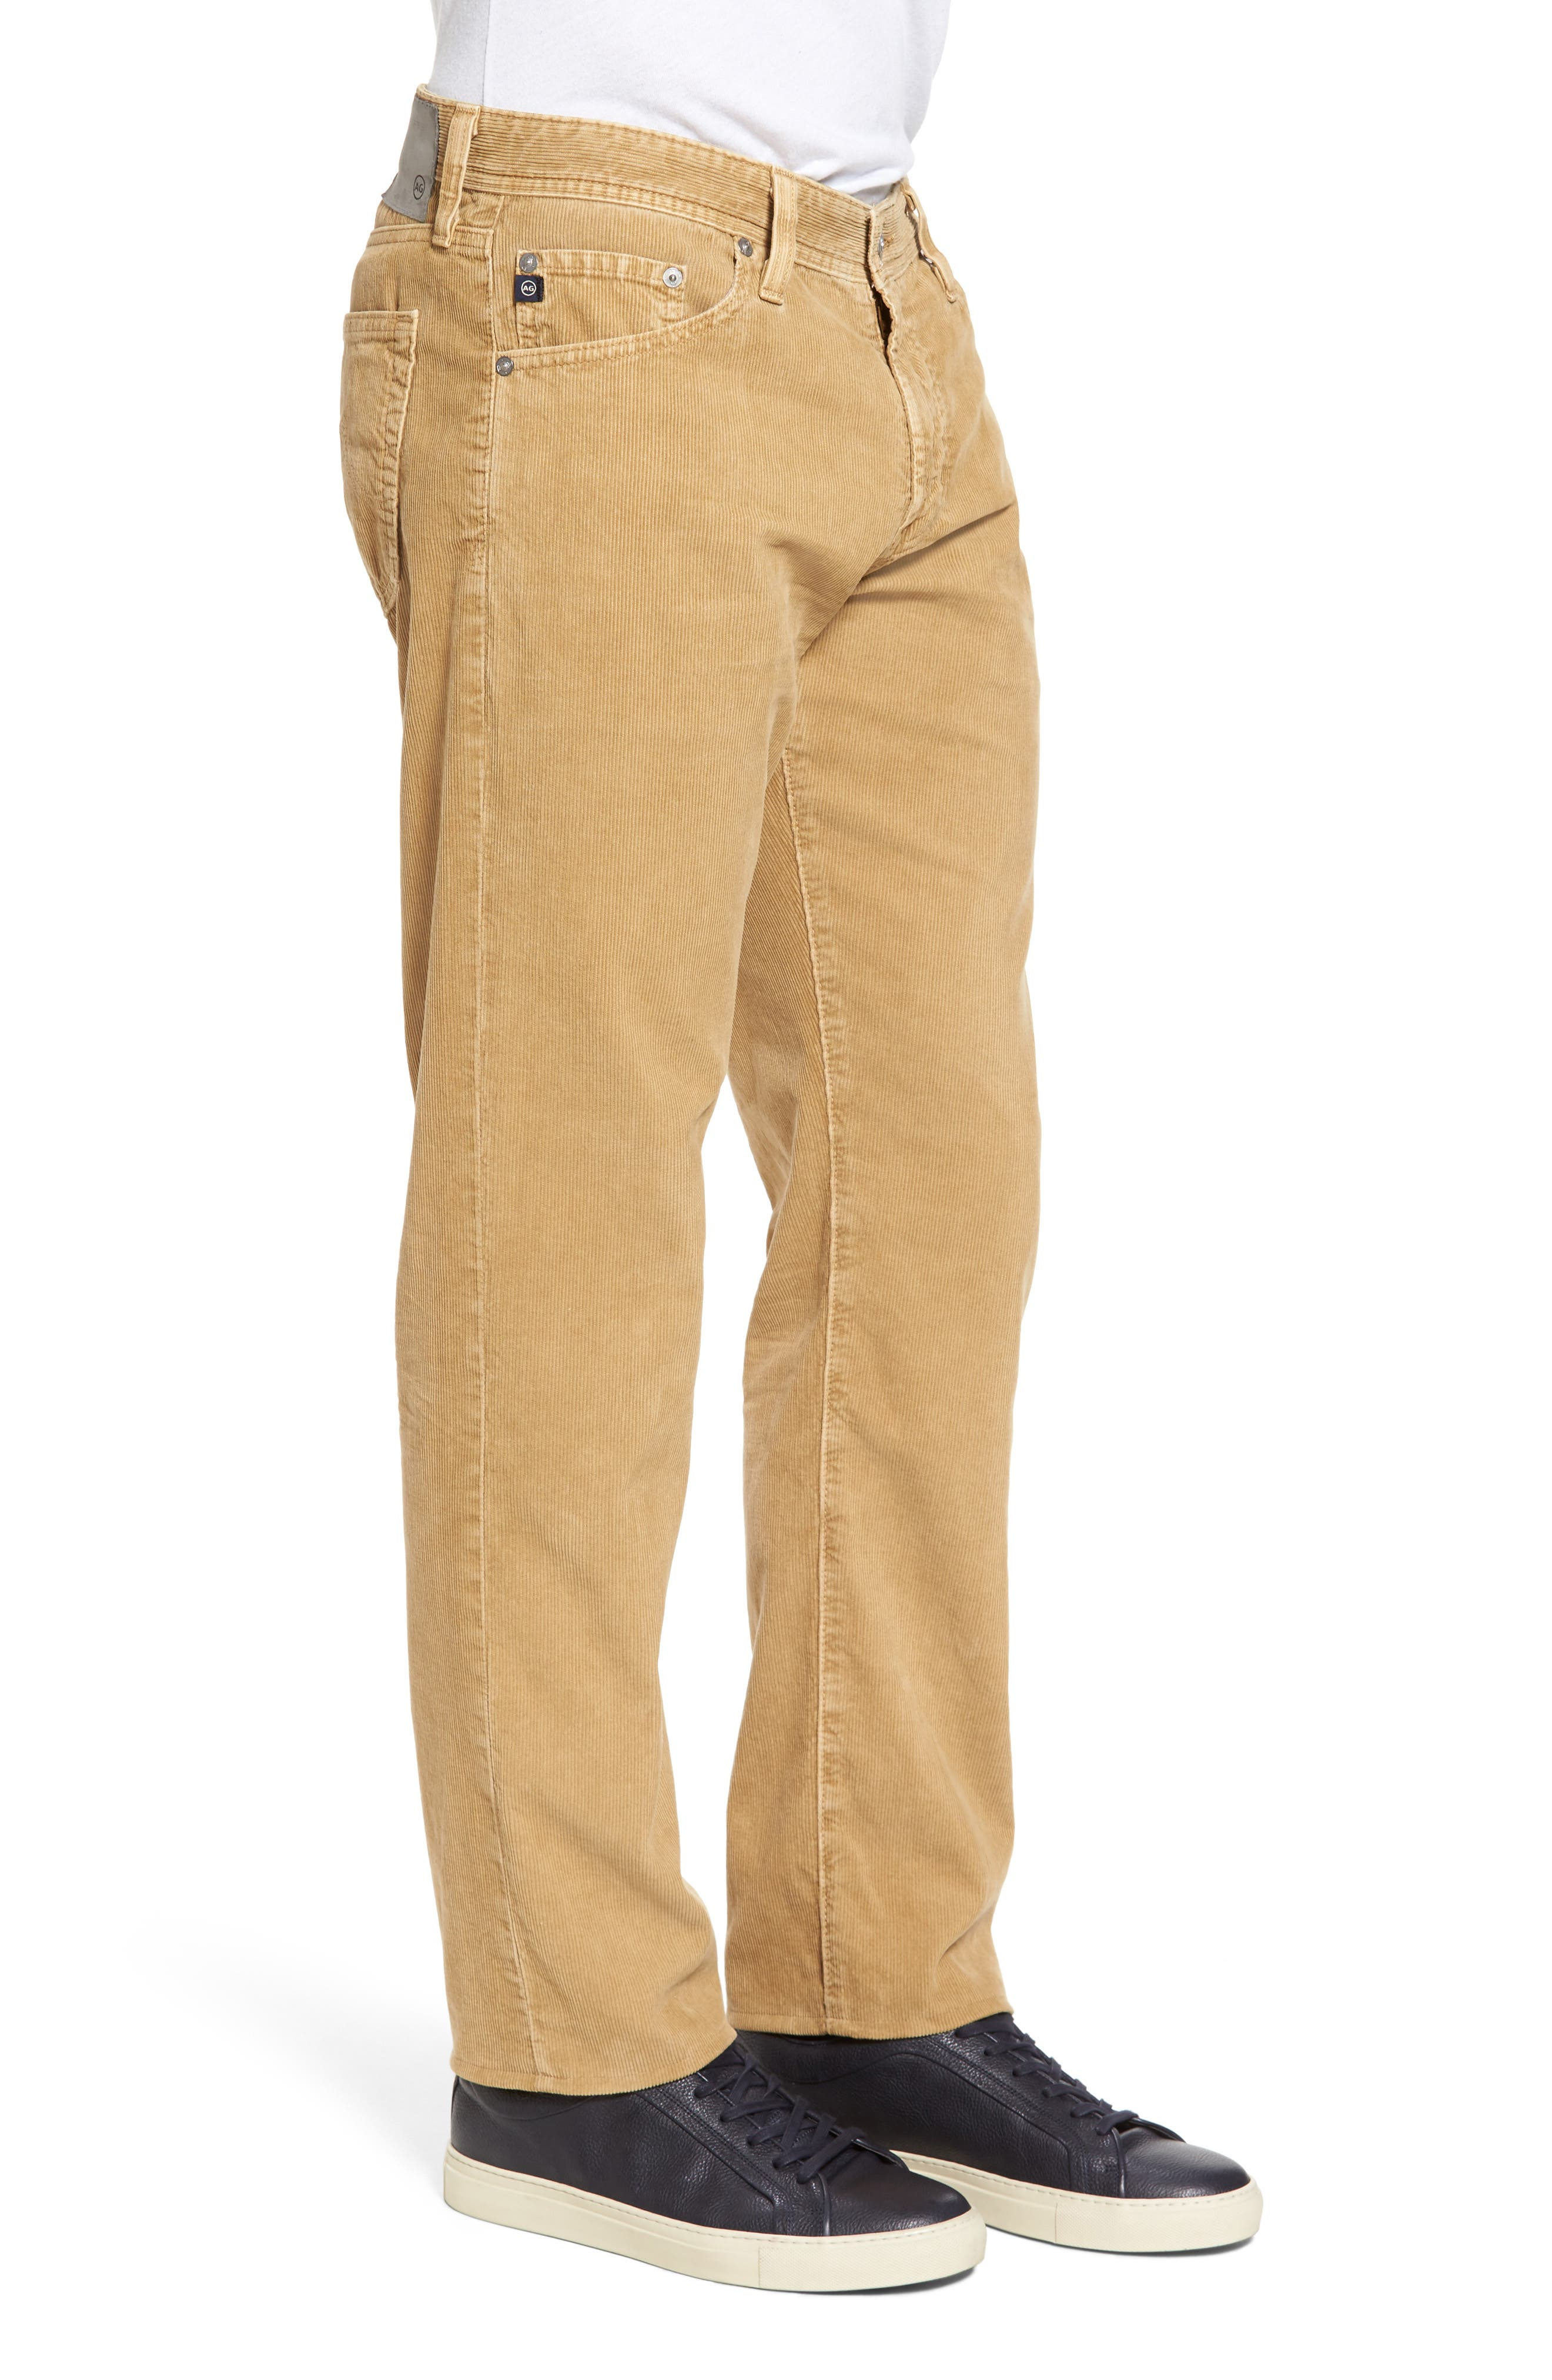 'Graduate' Tailored Straight Leg Corduroy Pants,                             Alternate thumbnail 32, color,